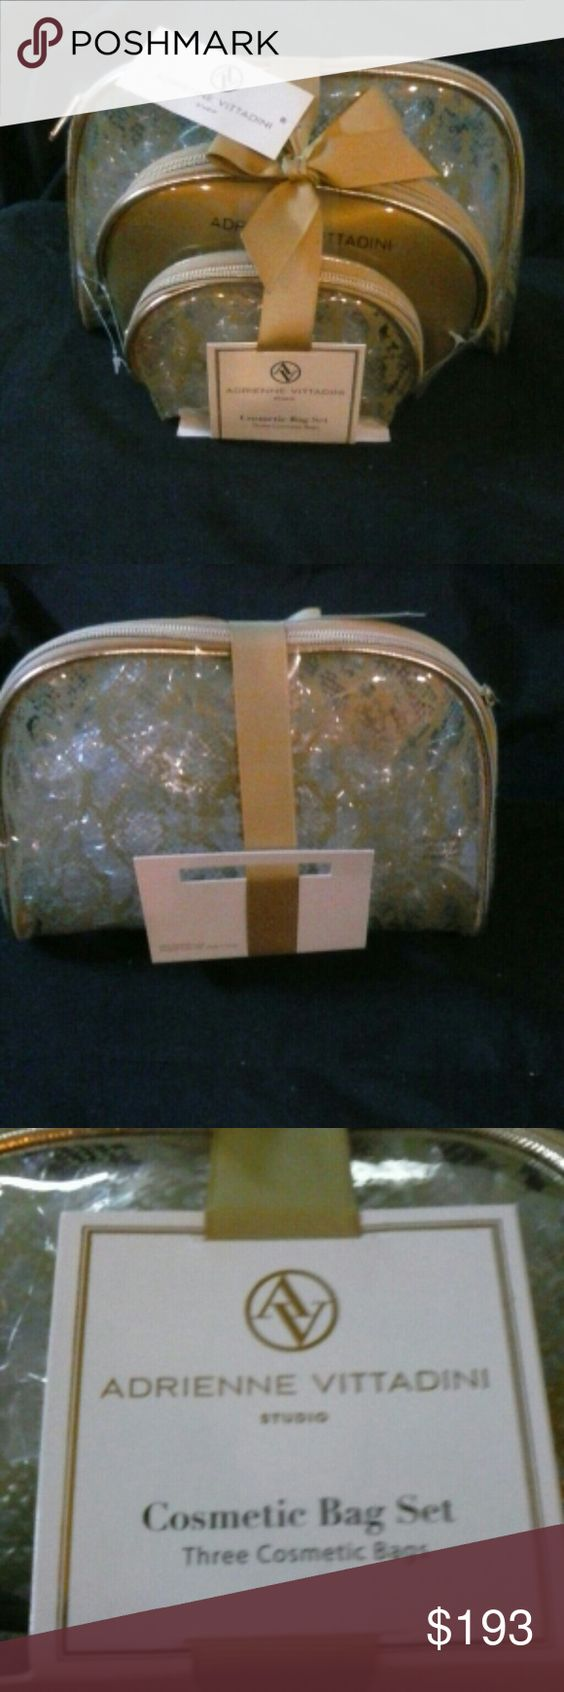 LAST CHANCE NWT Adrienne Vittadini Cosmetic Bags! Listing will be removed Sunday at midnight.  3 separate bag set CLEAR w/gold design.  See through makes things easy to see. If u travel or not these are attractive and functional at a great price and gift item! Adrienne Vittadini Bags Cosmetic Bags & Cases